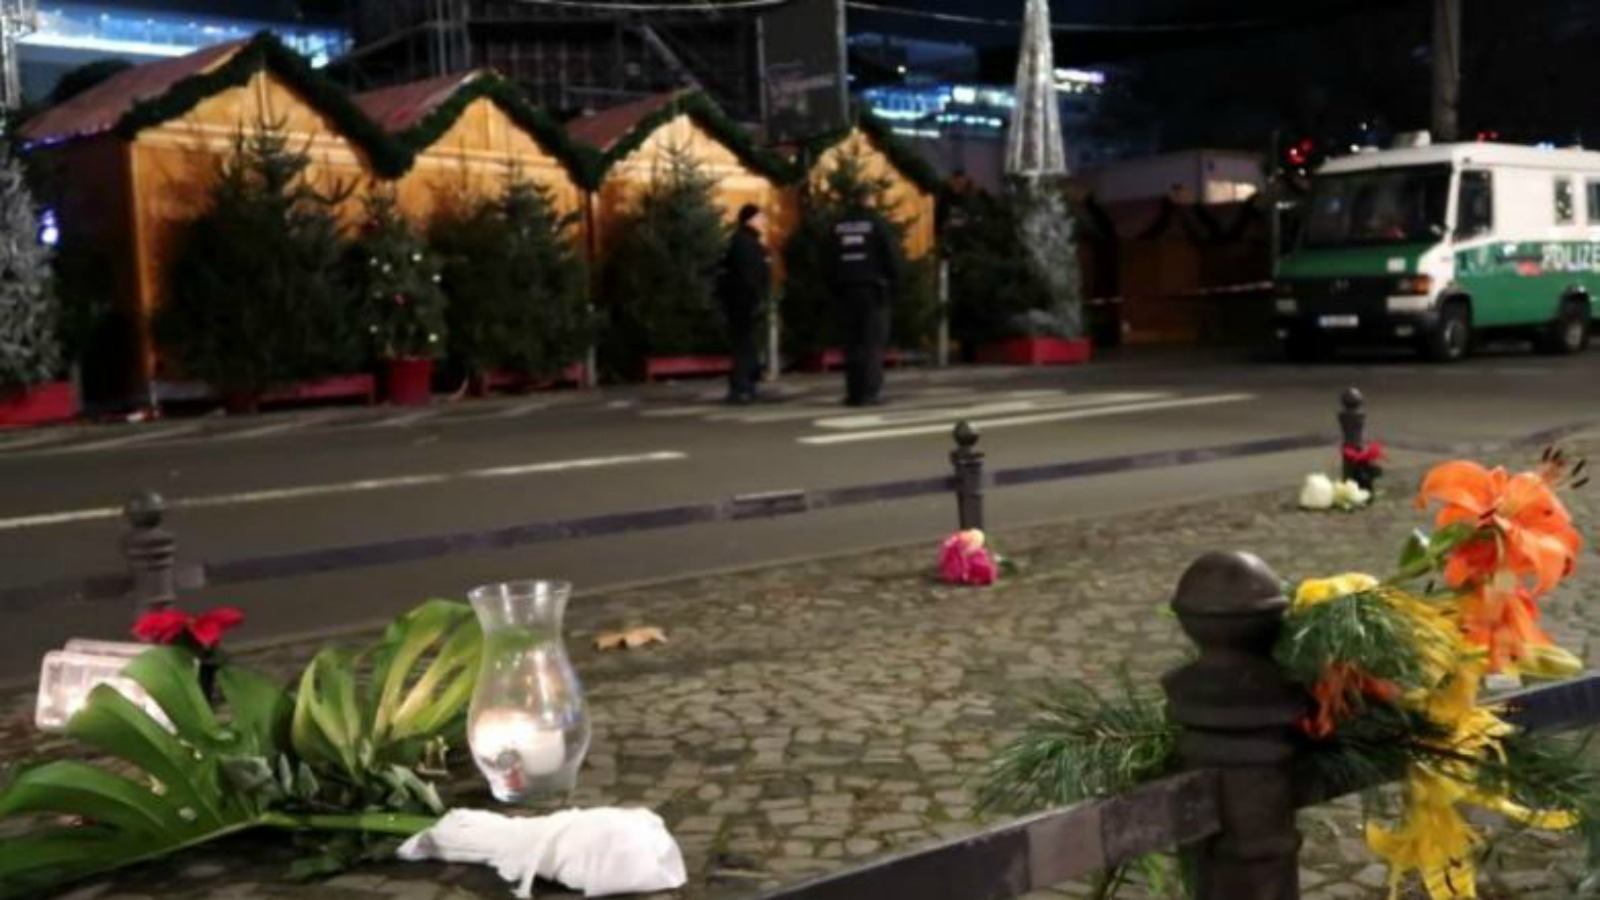 Christmas In Europe Wallpaper.Berlin Christmas Market Attack Affects All Europe